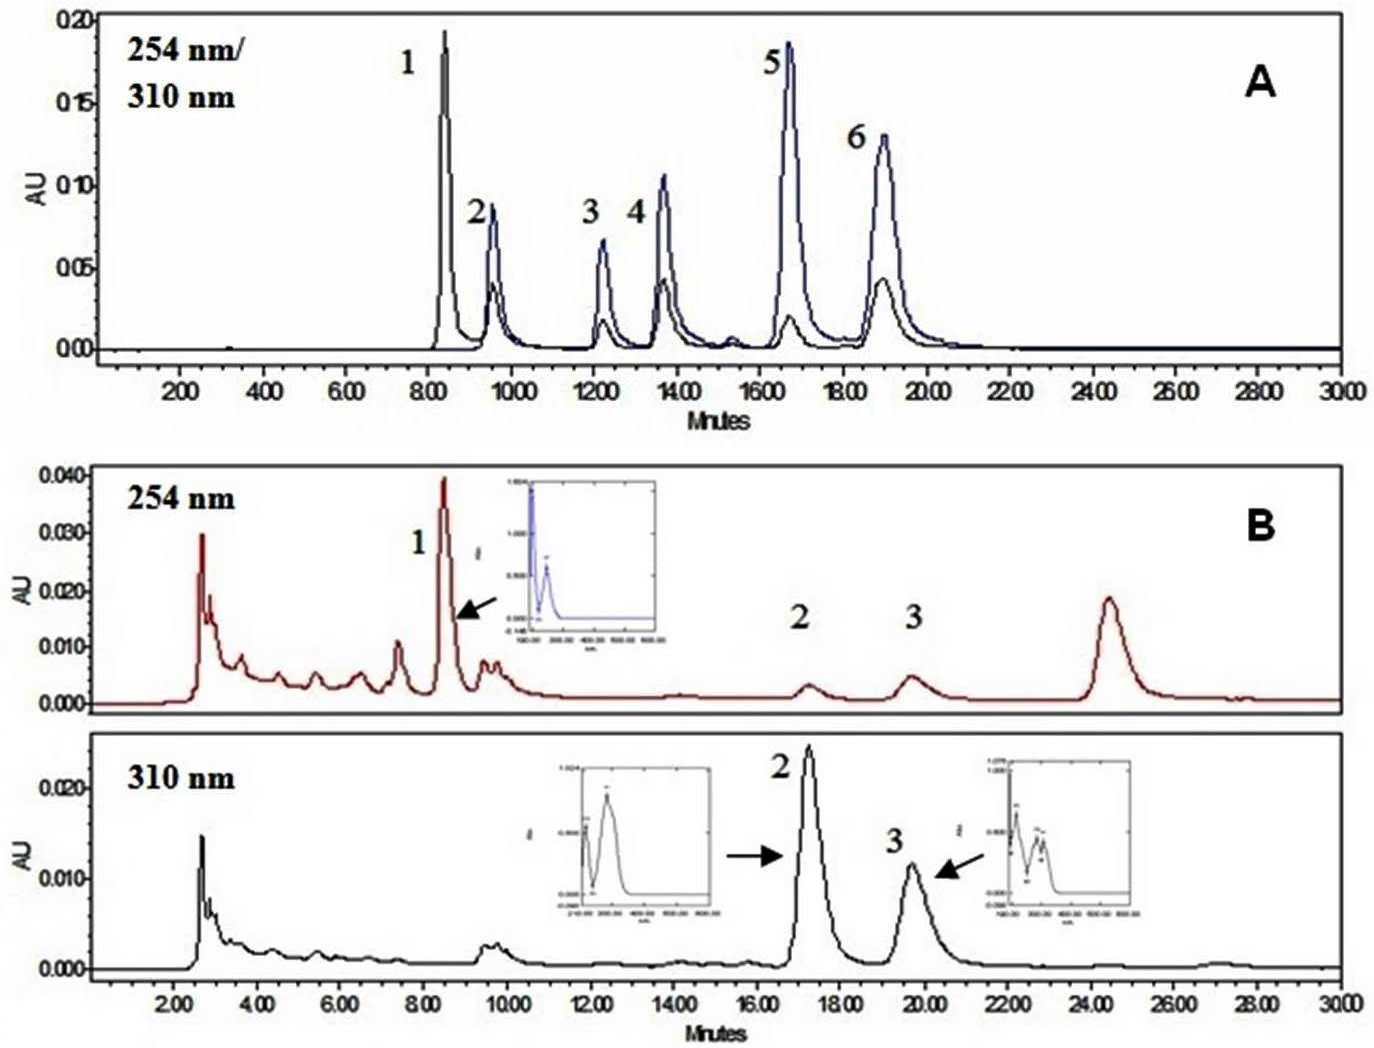 Chromatographic analysis: A, RP-HPLC chromatograms of authentic standards of different phenolic compounds. Peak identity: 1. 4-Hydroxybenzoic acid, 2.vanillic acid, 3.vanillin, 4. 4-hydroxybenzaldehyde, 5.4-coumaric acid, 6. trans-ferulic acid; B, RP-HPLC chromatograms of cell-wall bound fractions. Peak identity: 1. 4-hydroxybenzoic acid, 2. 4- coumaric acid, 3.ferulic acid. UV spectra are shown in inset. The unidentified peak is denoted by '*'.